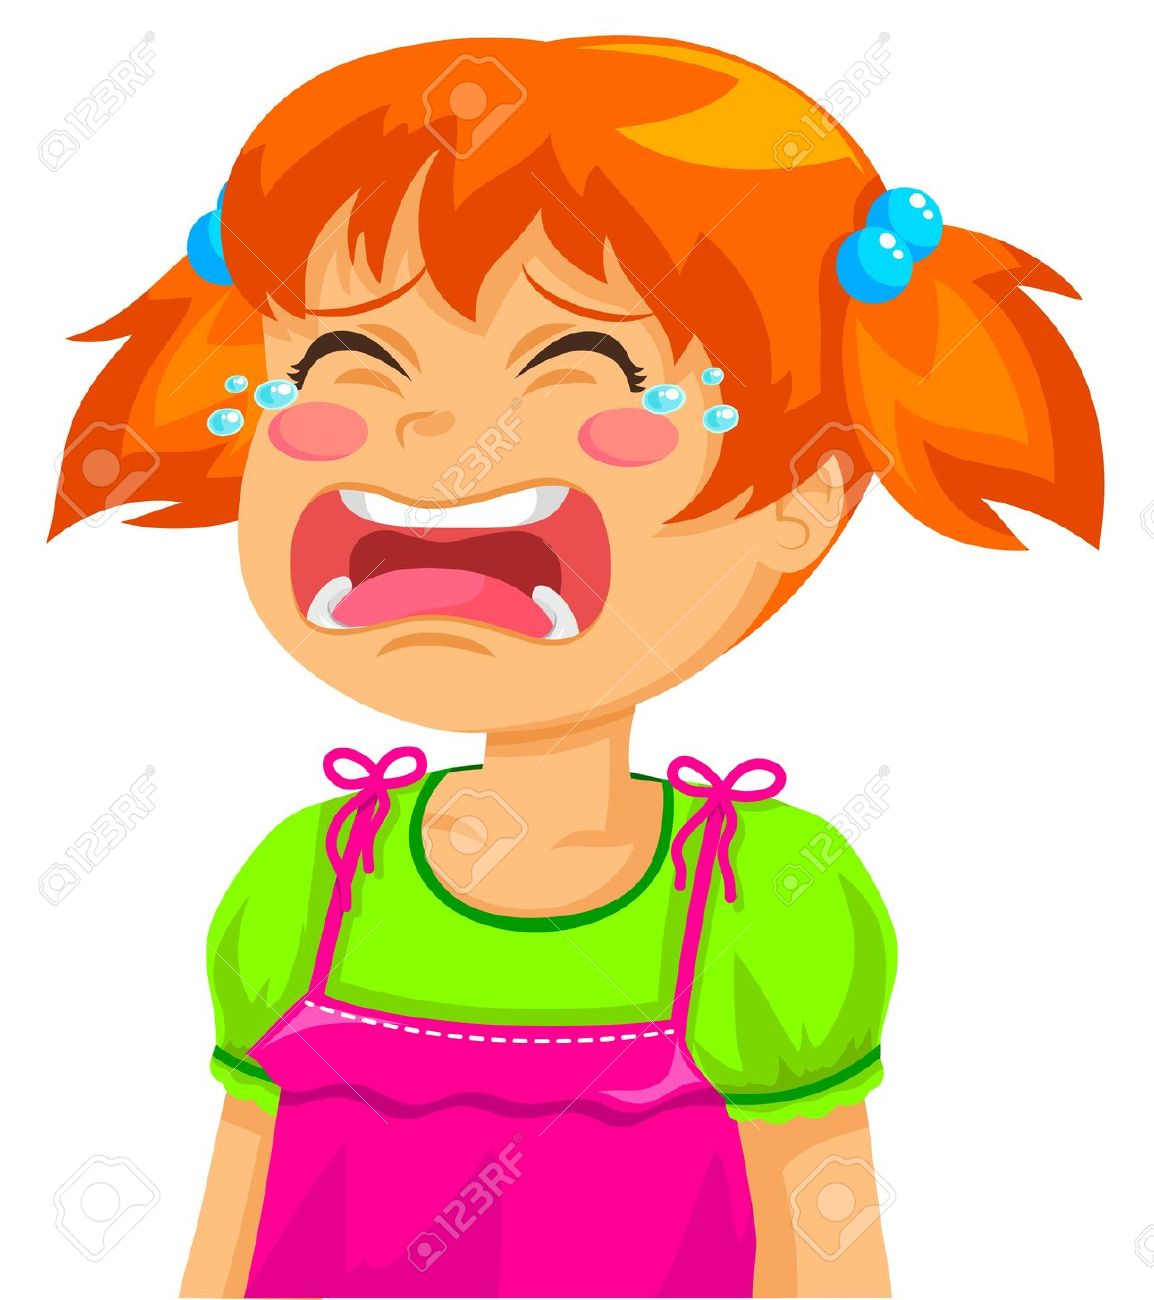 crying clipart clipart panda free clipart images crying baby clipart free crying baby clipart free